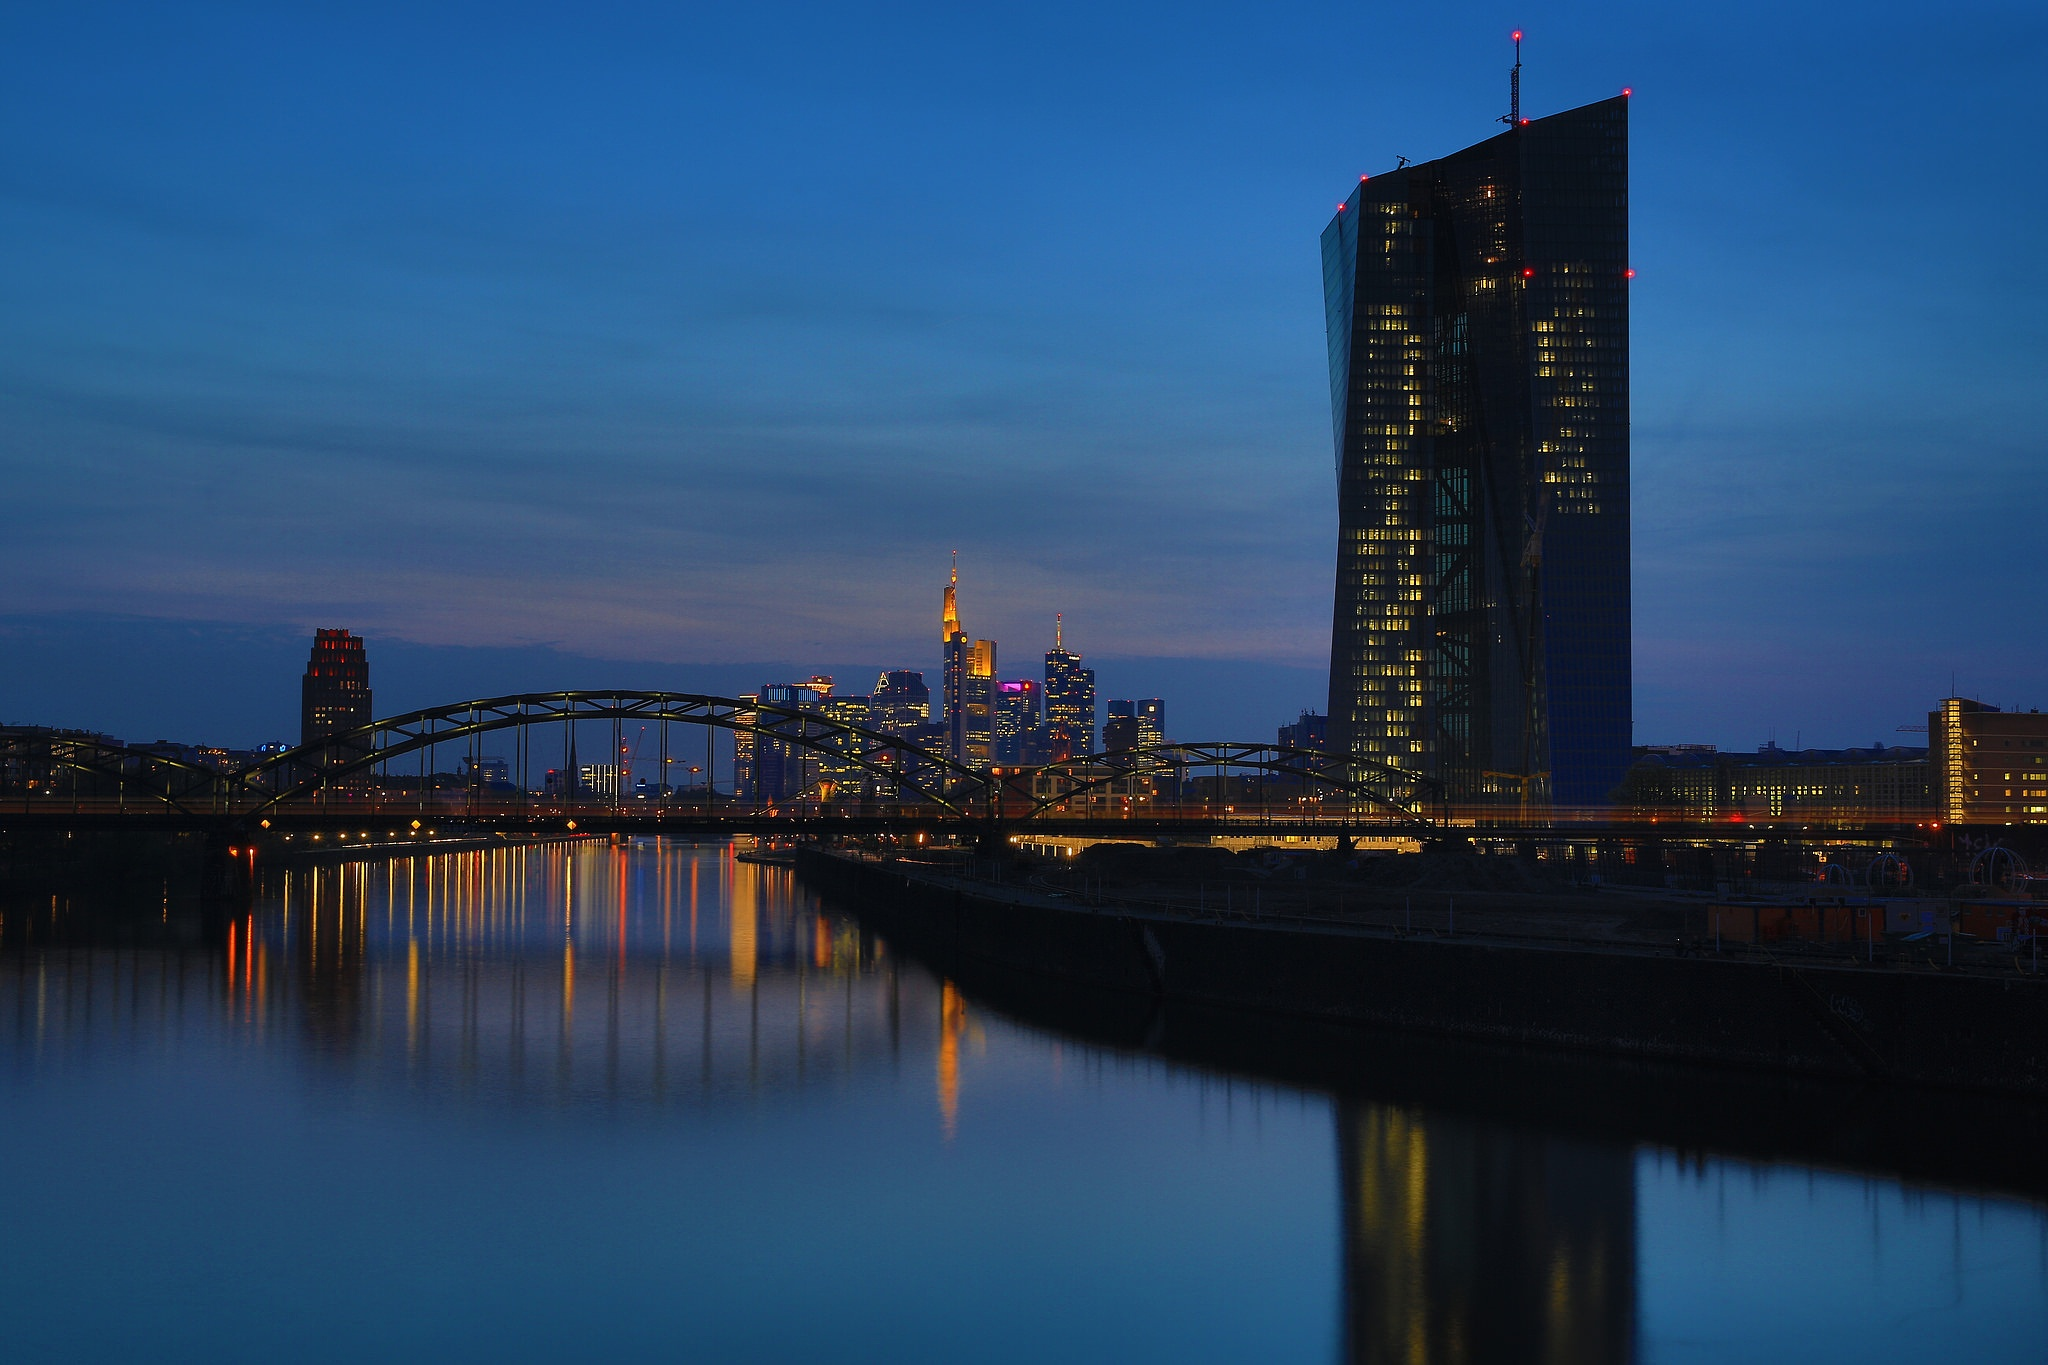 A silent Night in Frankfurt by DieBuben